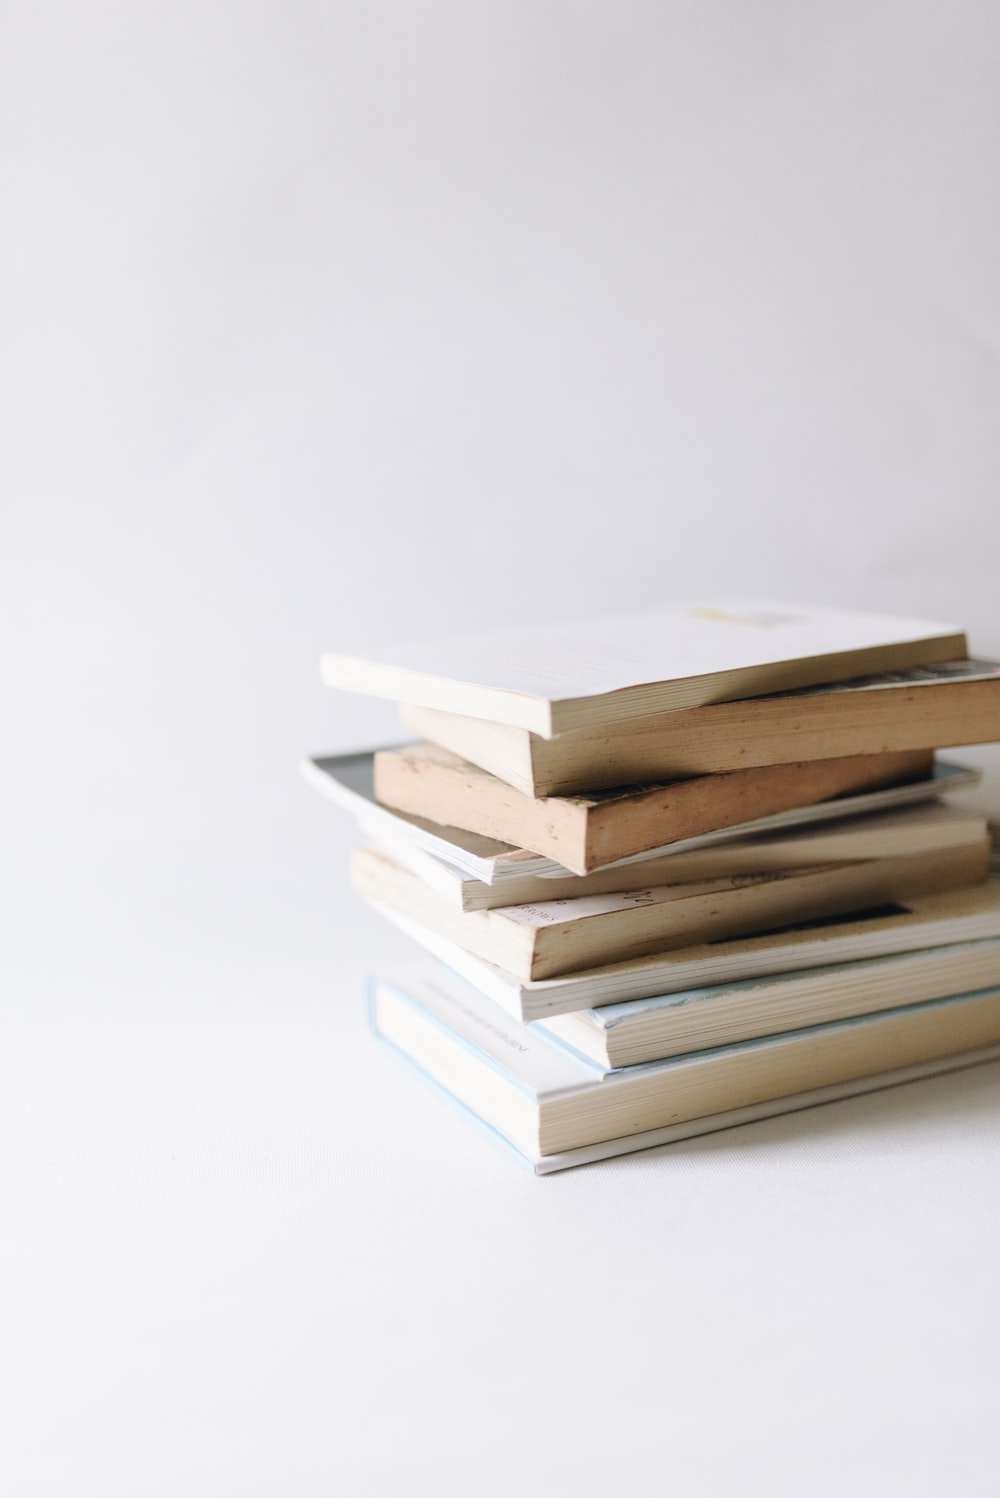 stack of books on white surface